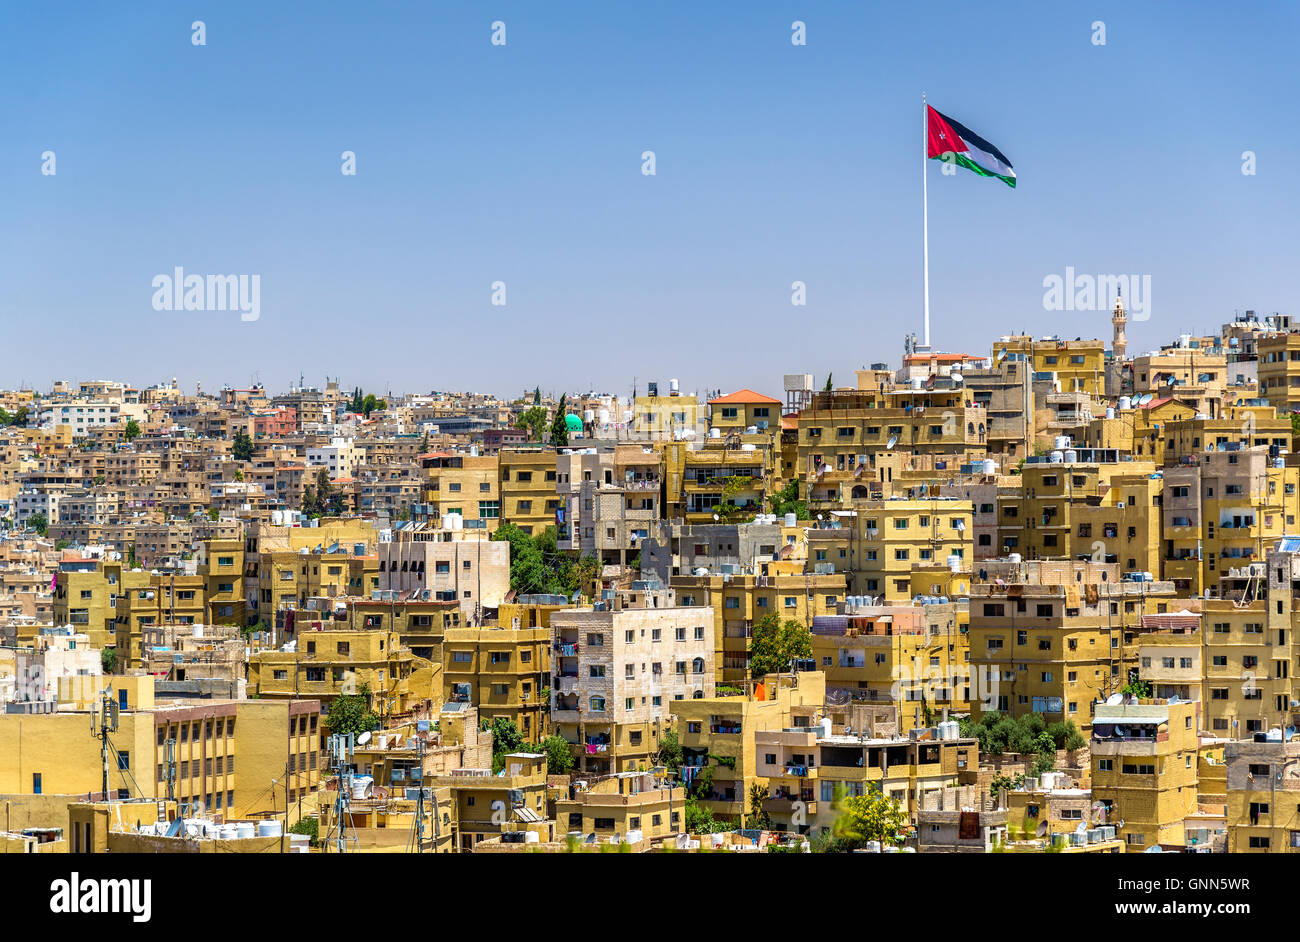 Cityscape of Amman, Jordan Stock Photo